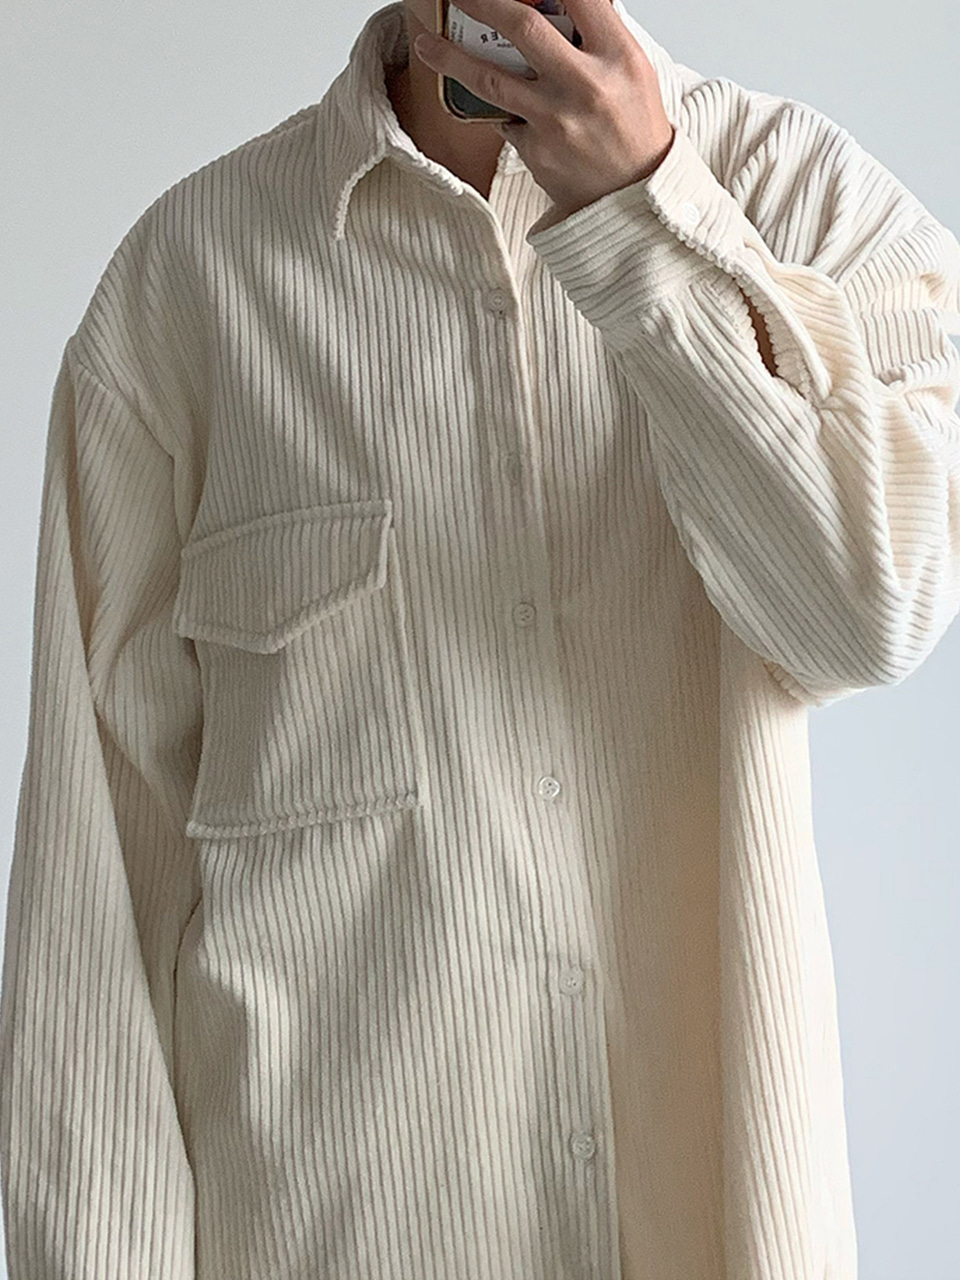 Rius Corduroy Oversized Shirt (2color)